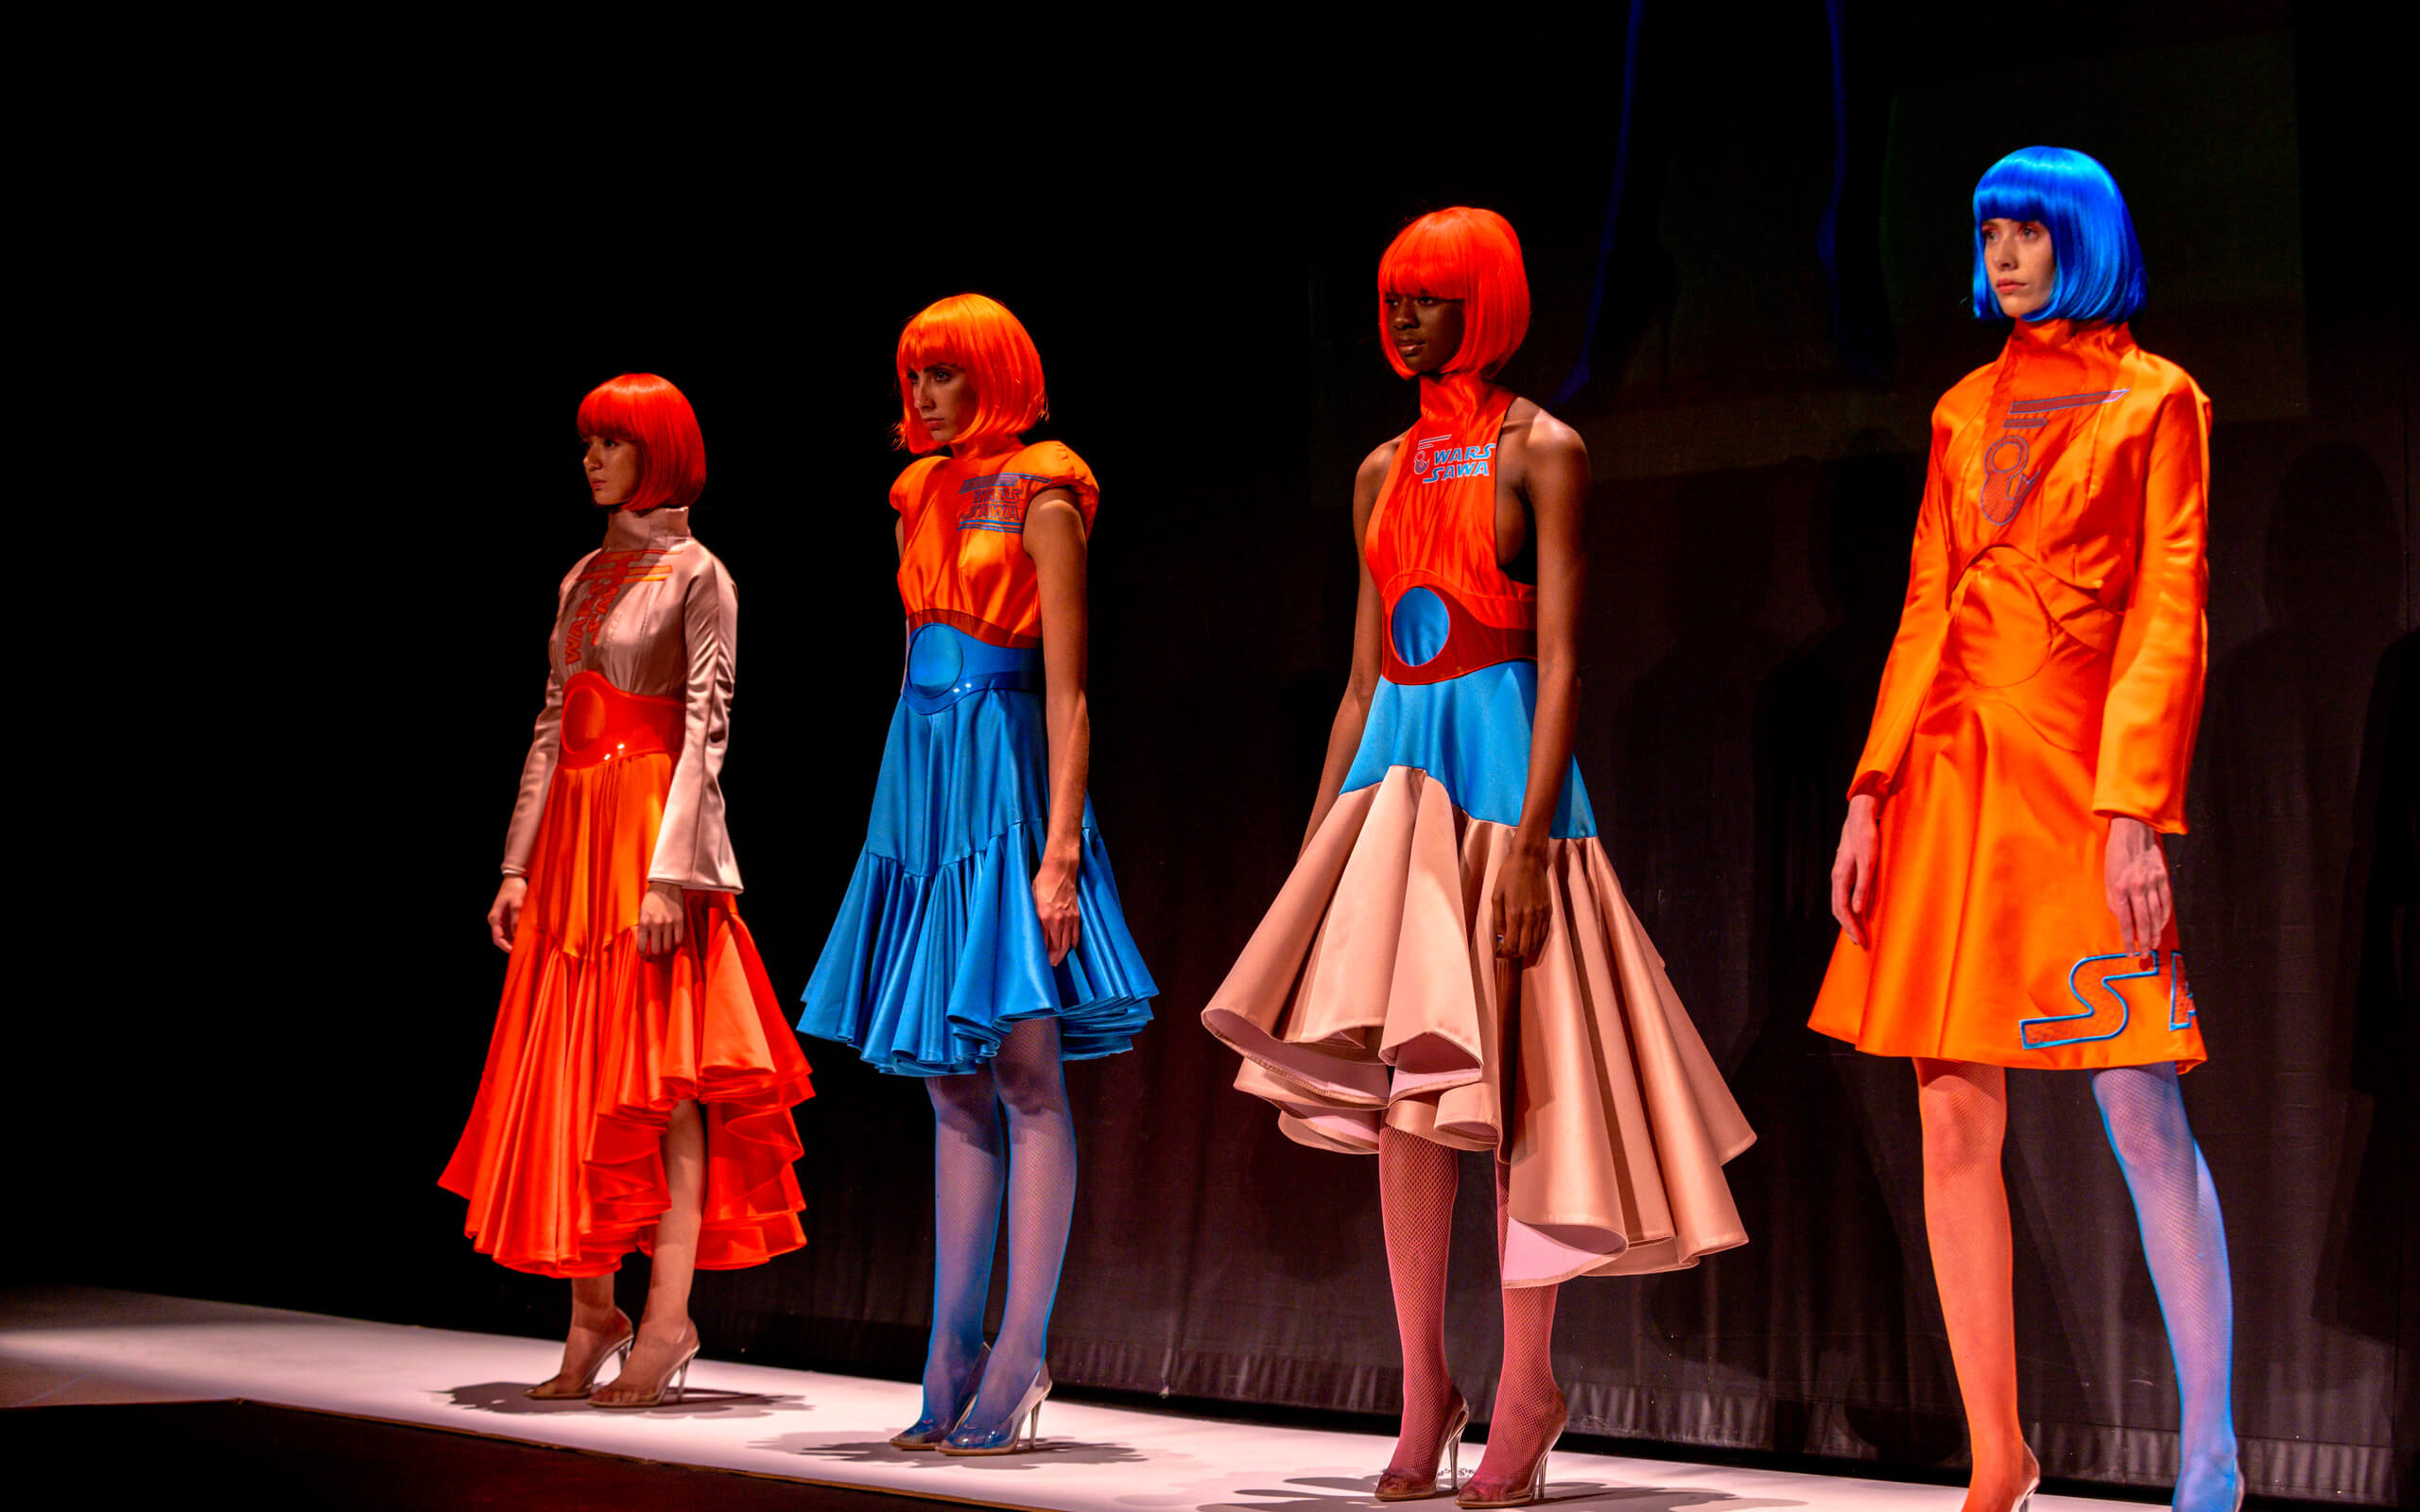 A group of models showcase neon futuristic womenswear on the catwalk